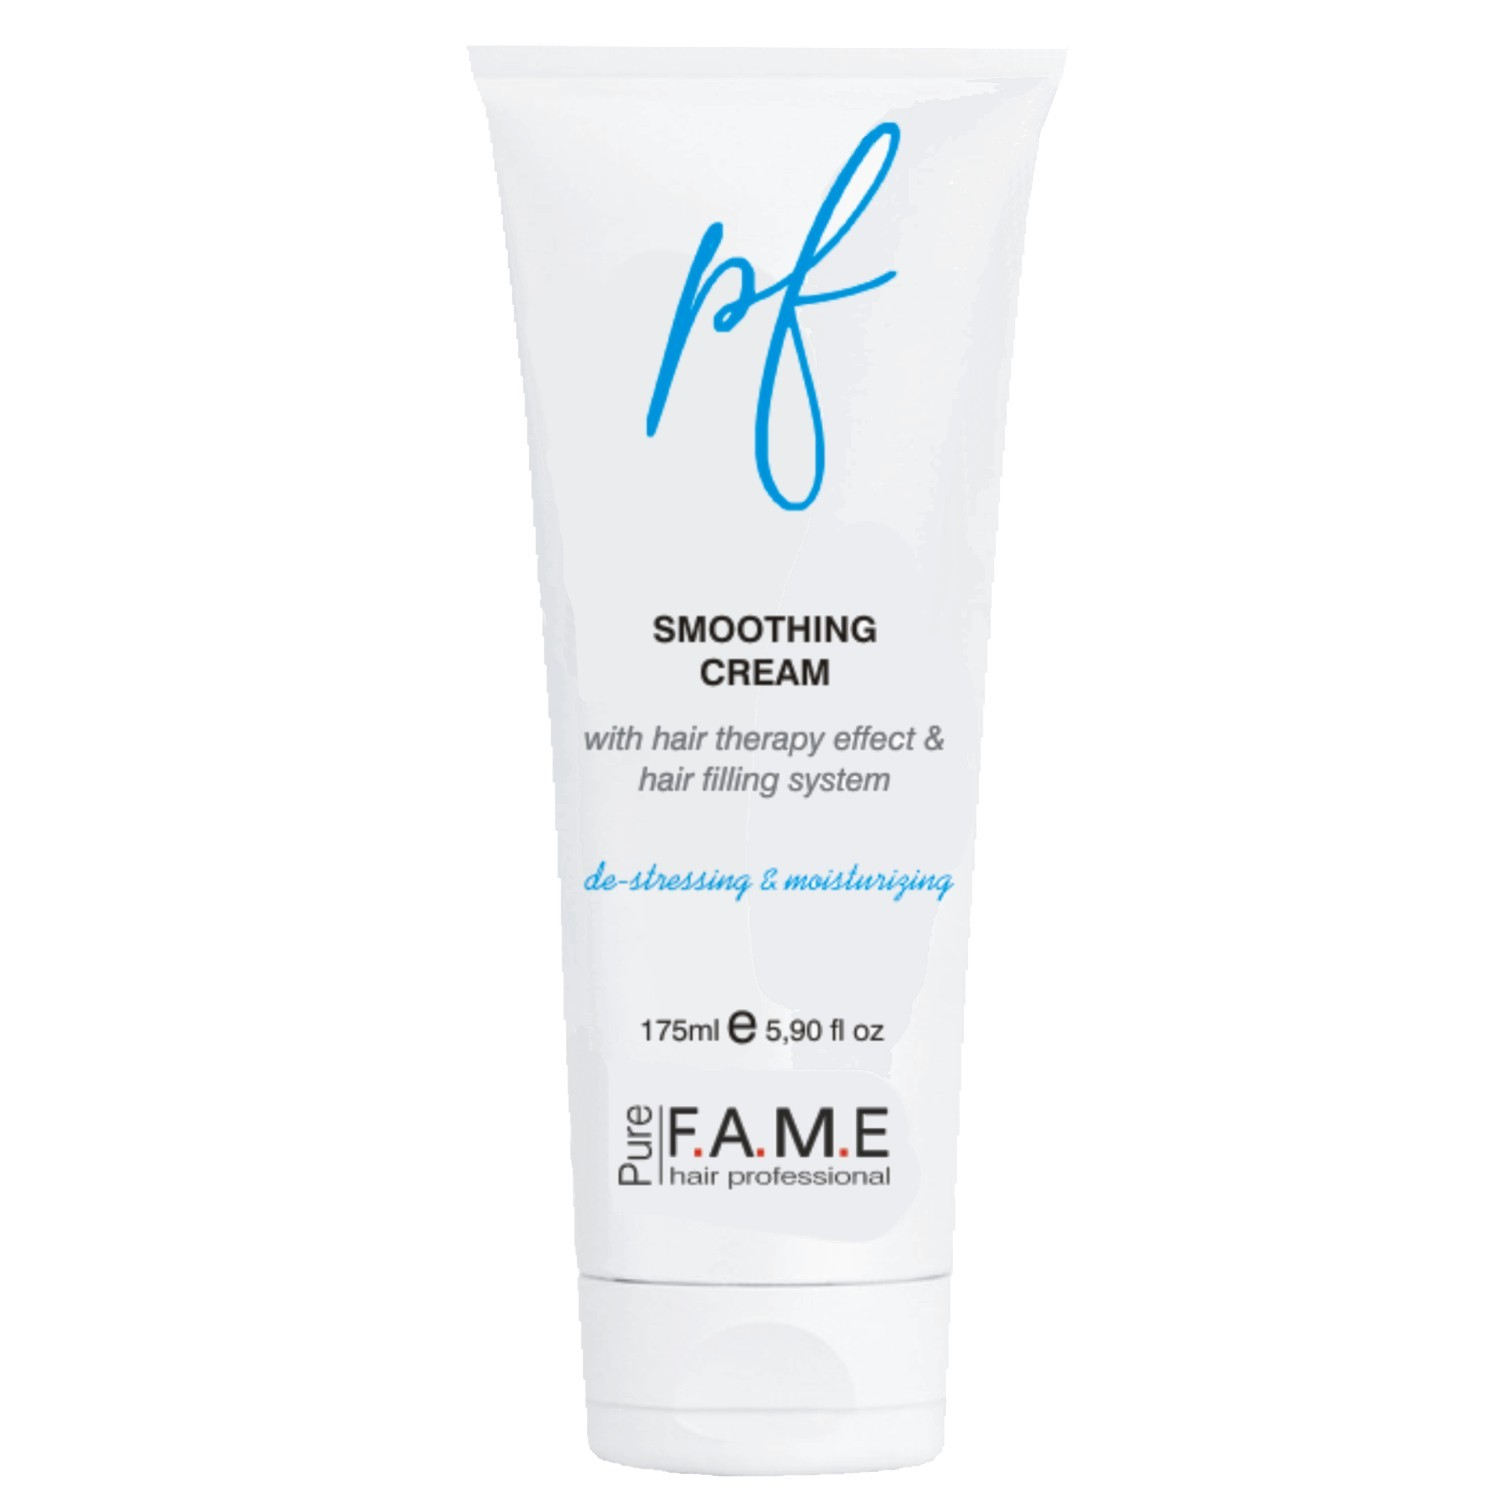 PURE FAME Smoothing Cream 175 ml